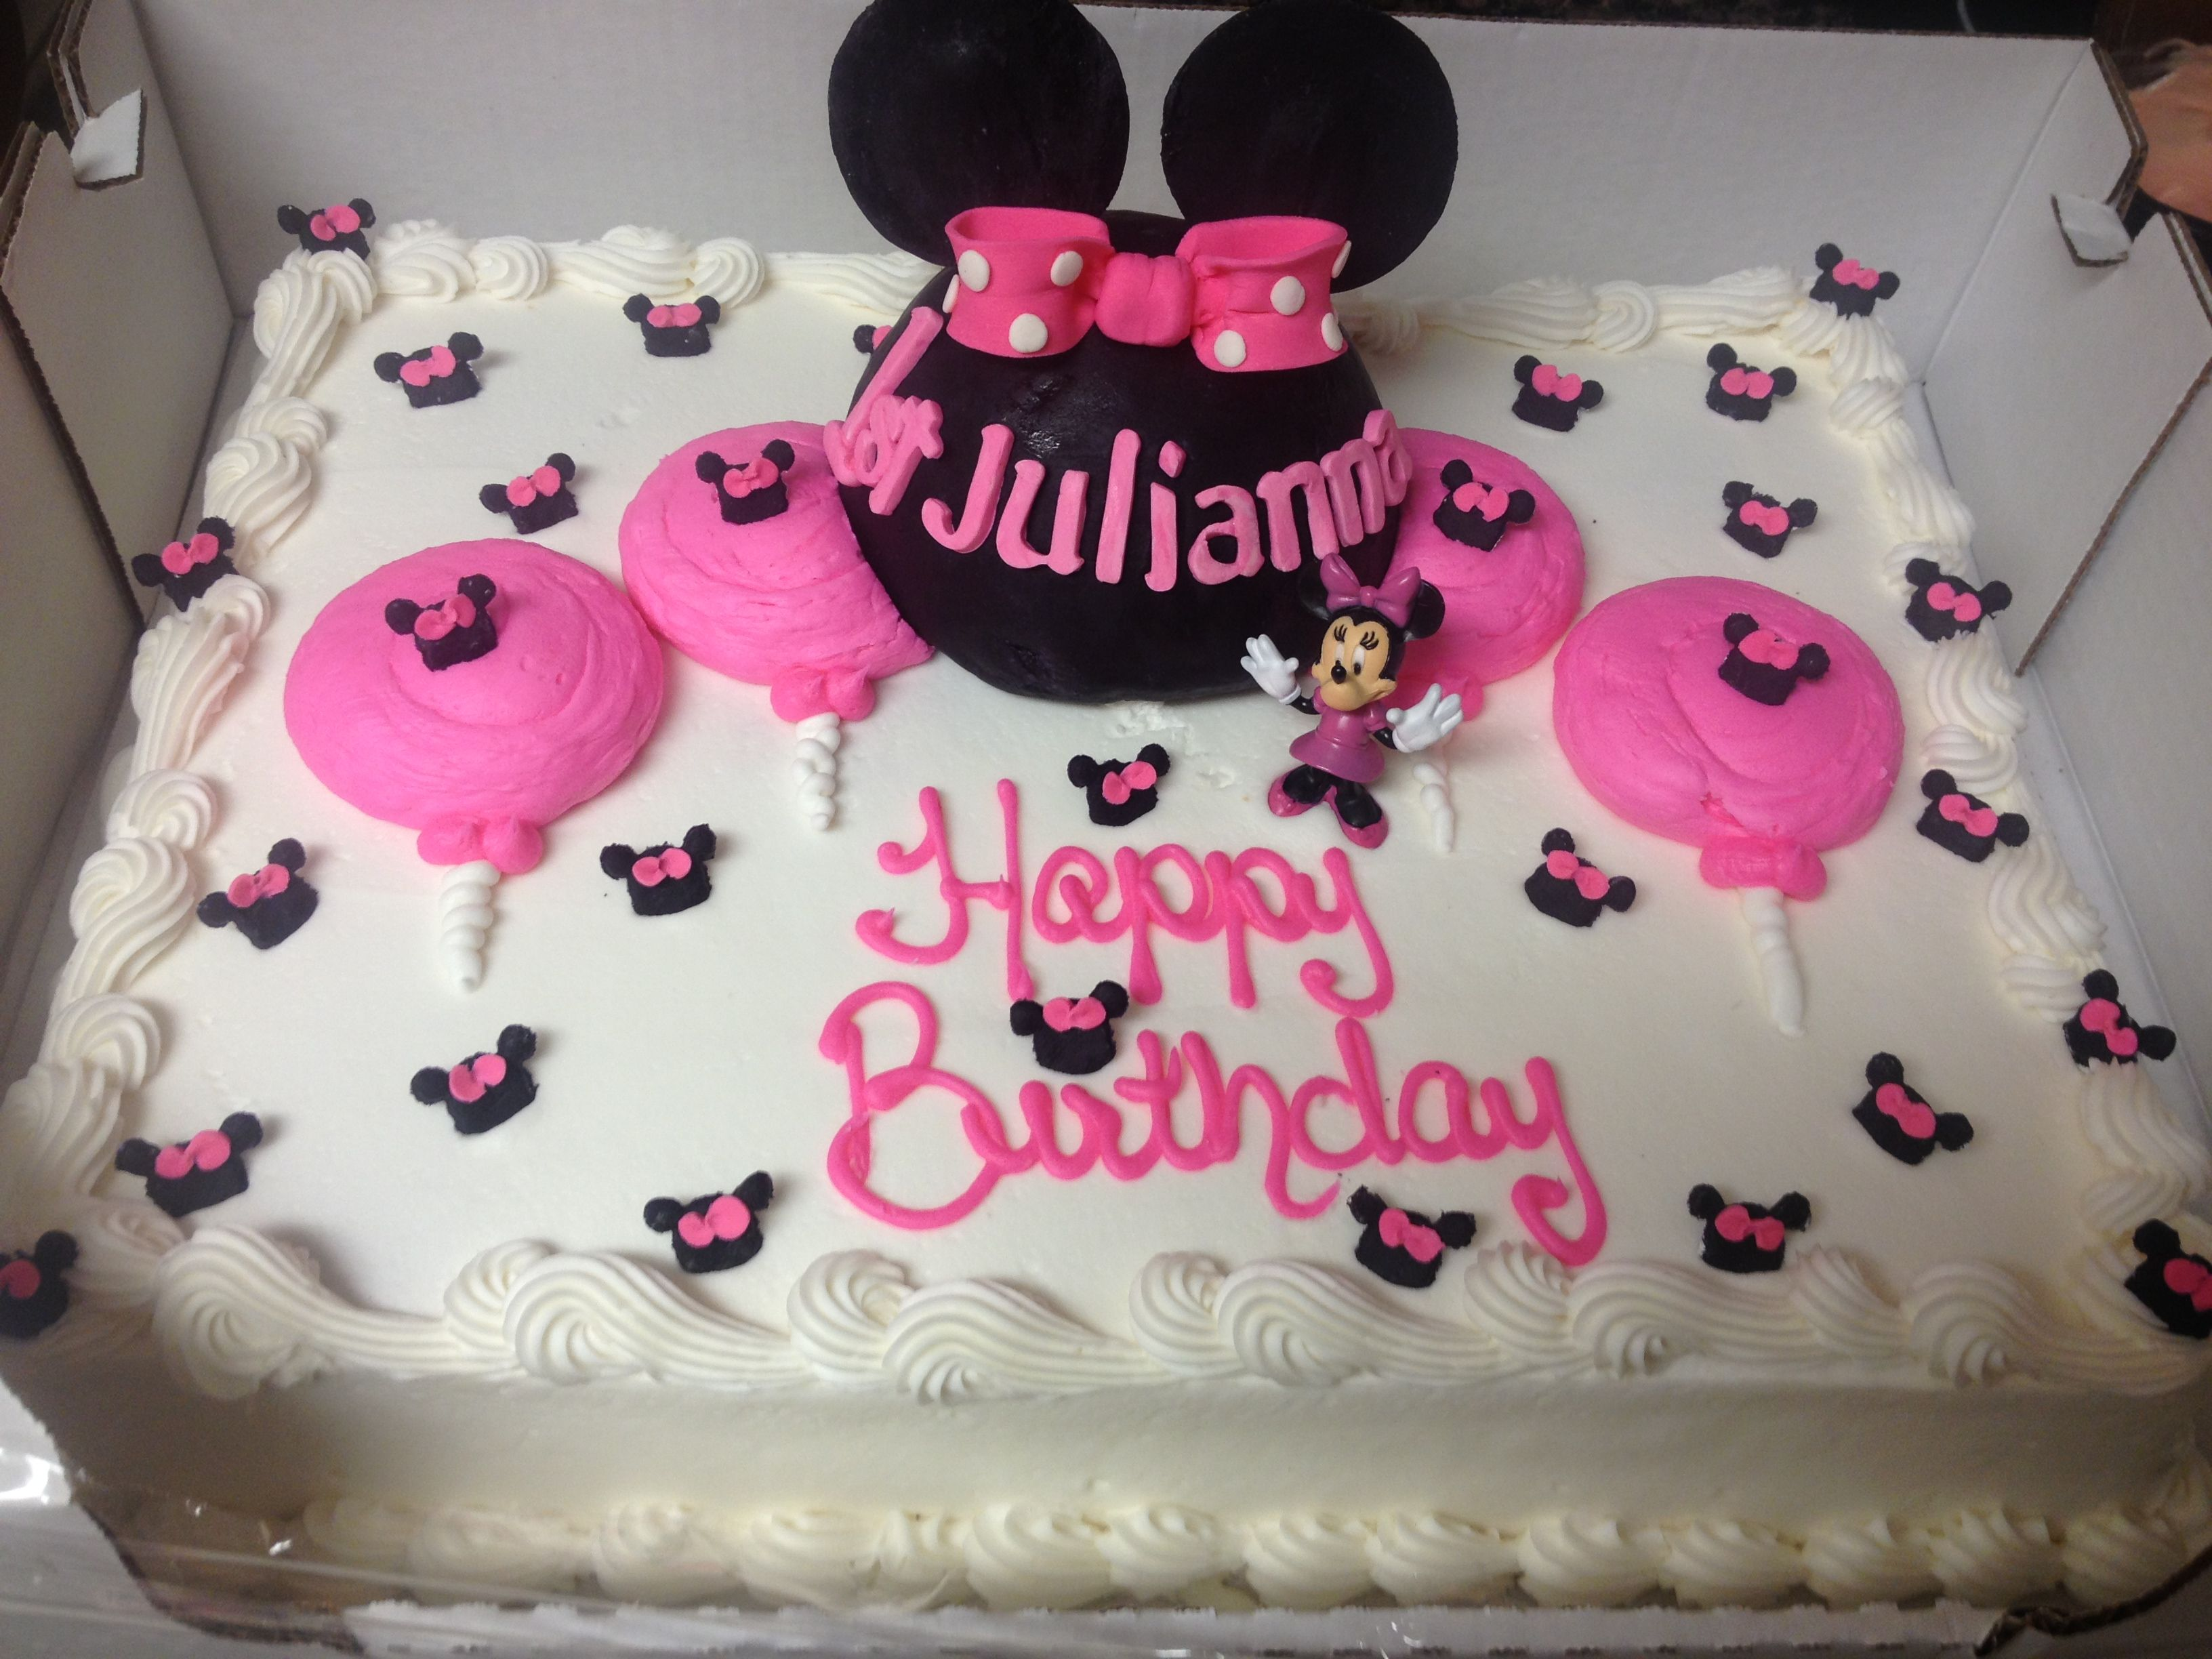 Cake from Costco that was Minnie fied